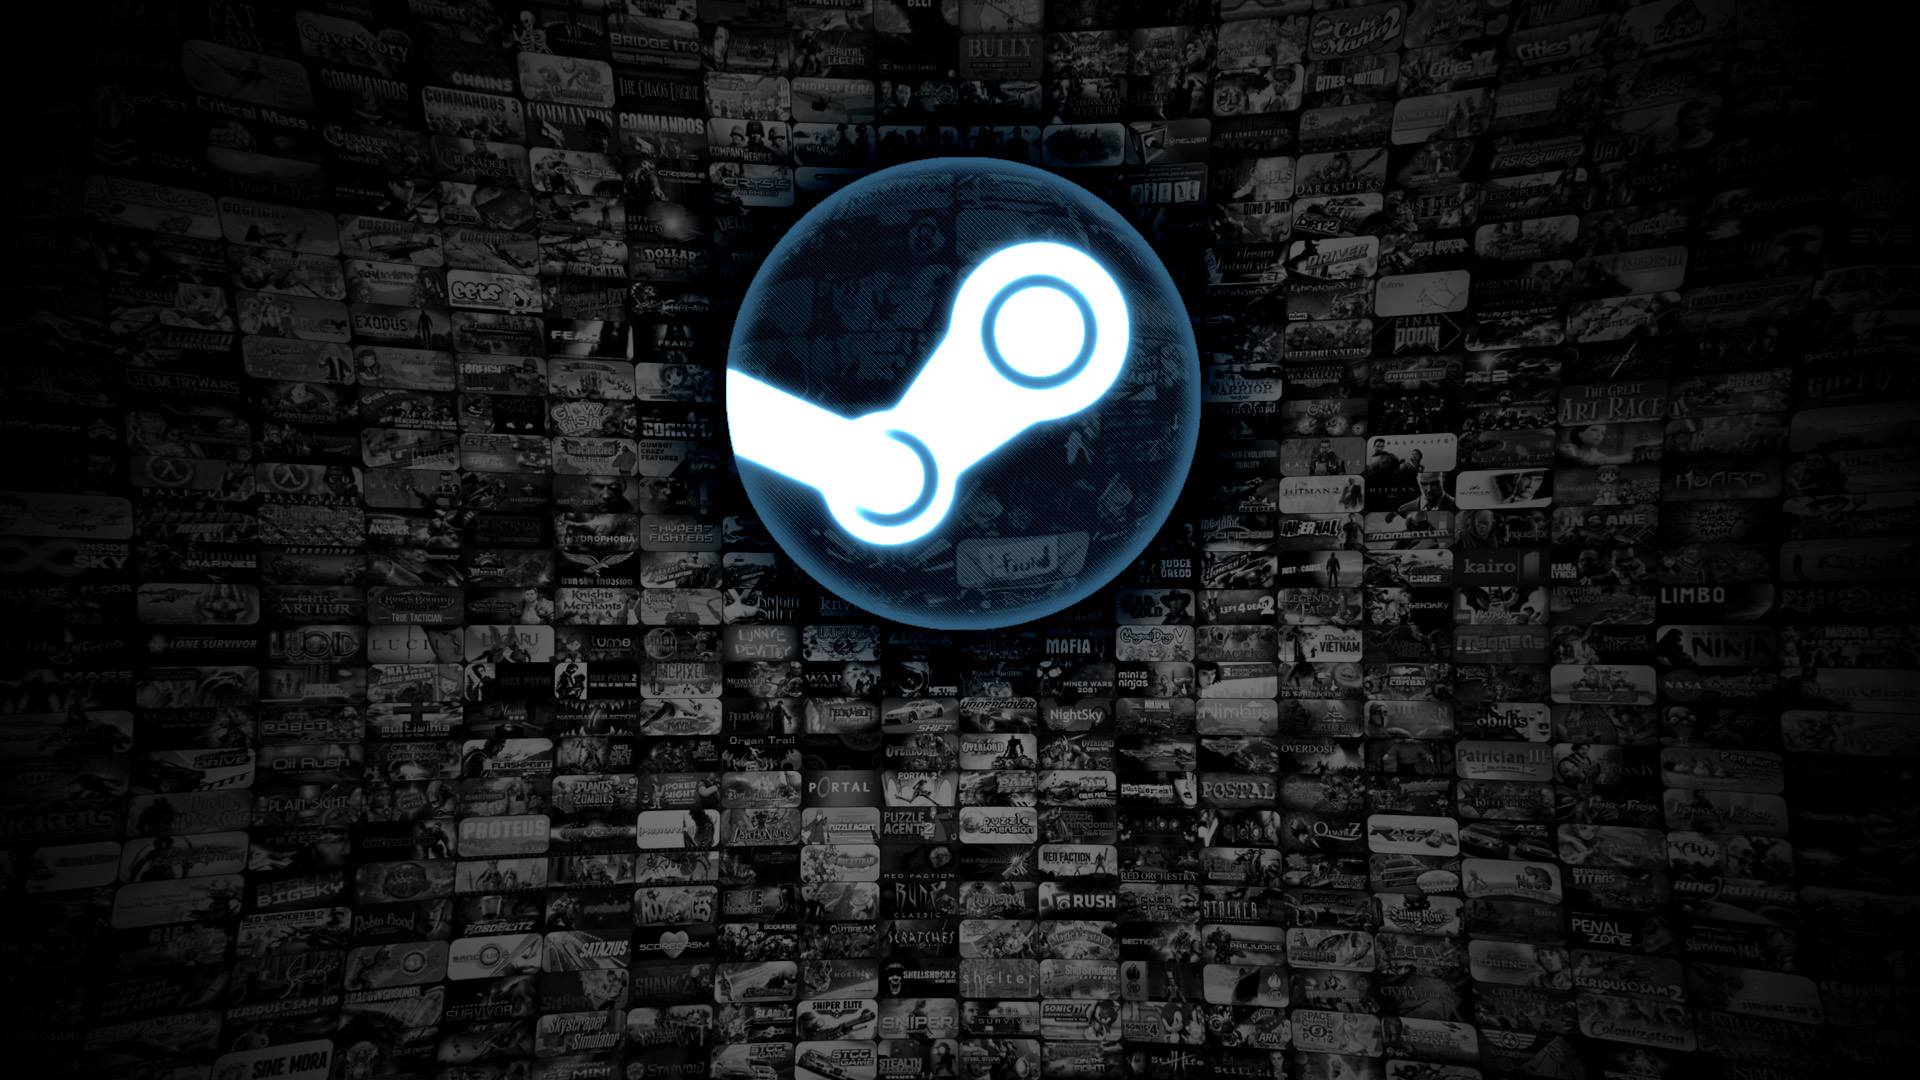 Valve doubles down on its laissez-faire approach to which games are sold on Steam screenshot